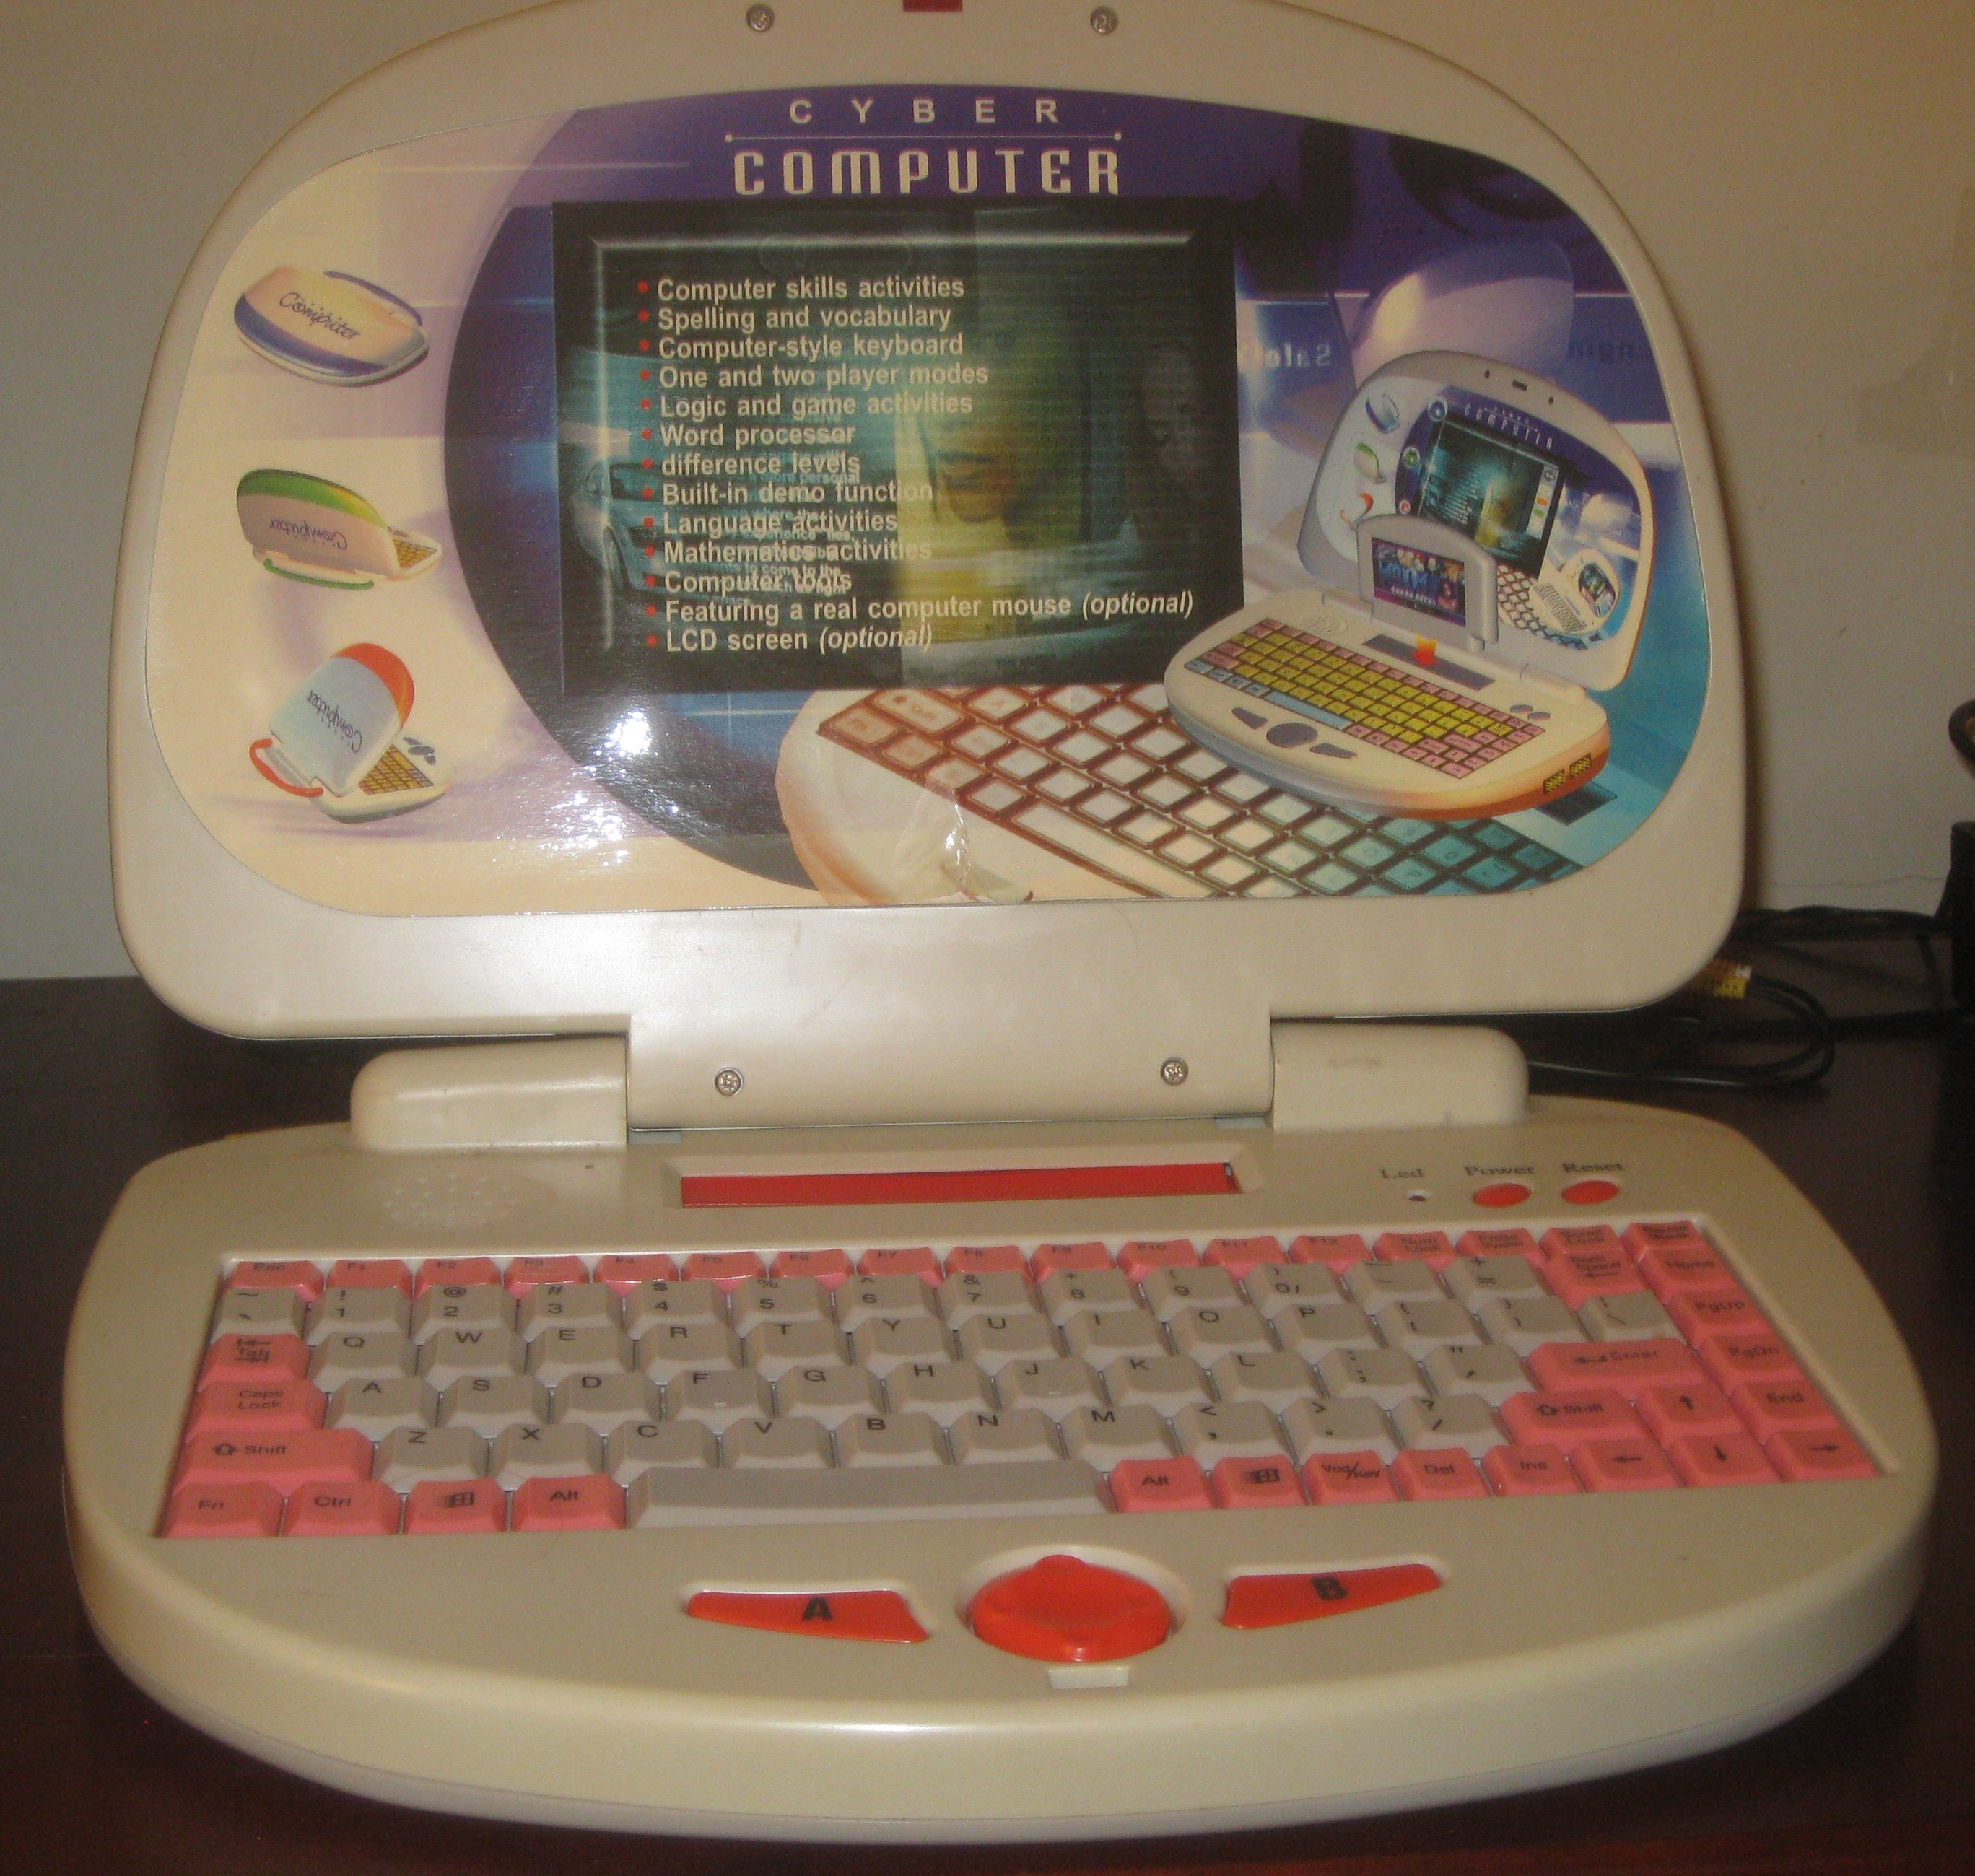 Cyber Computer